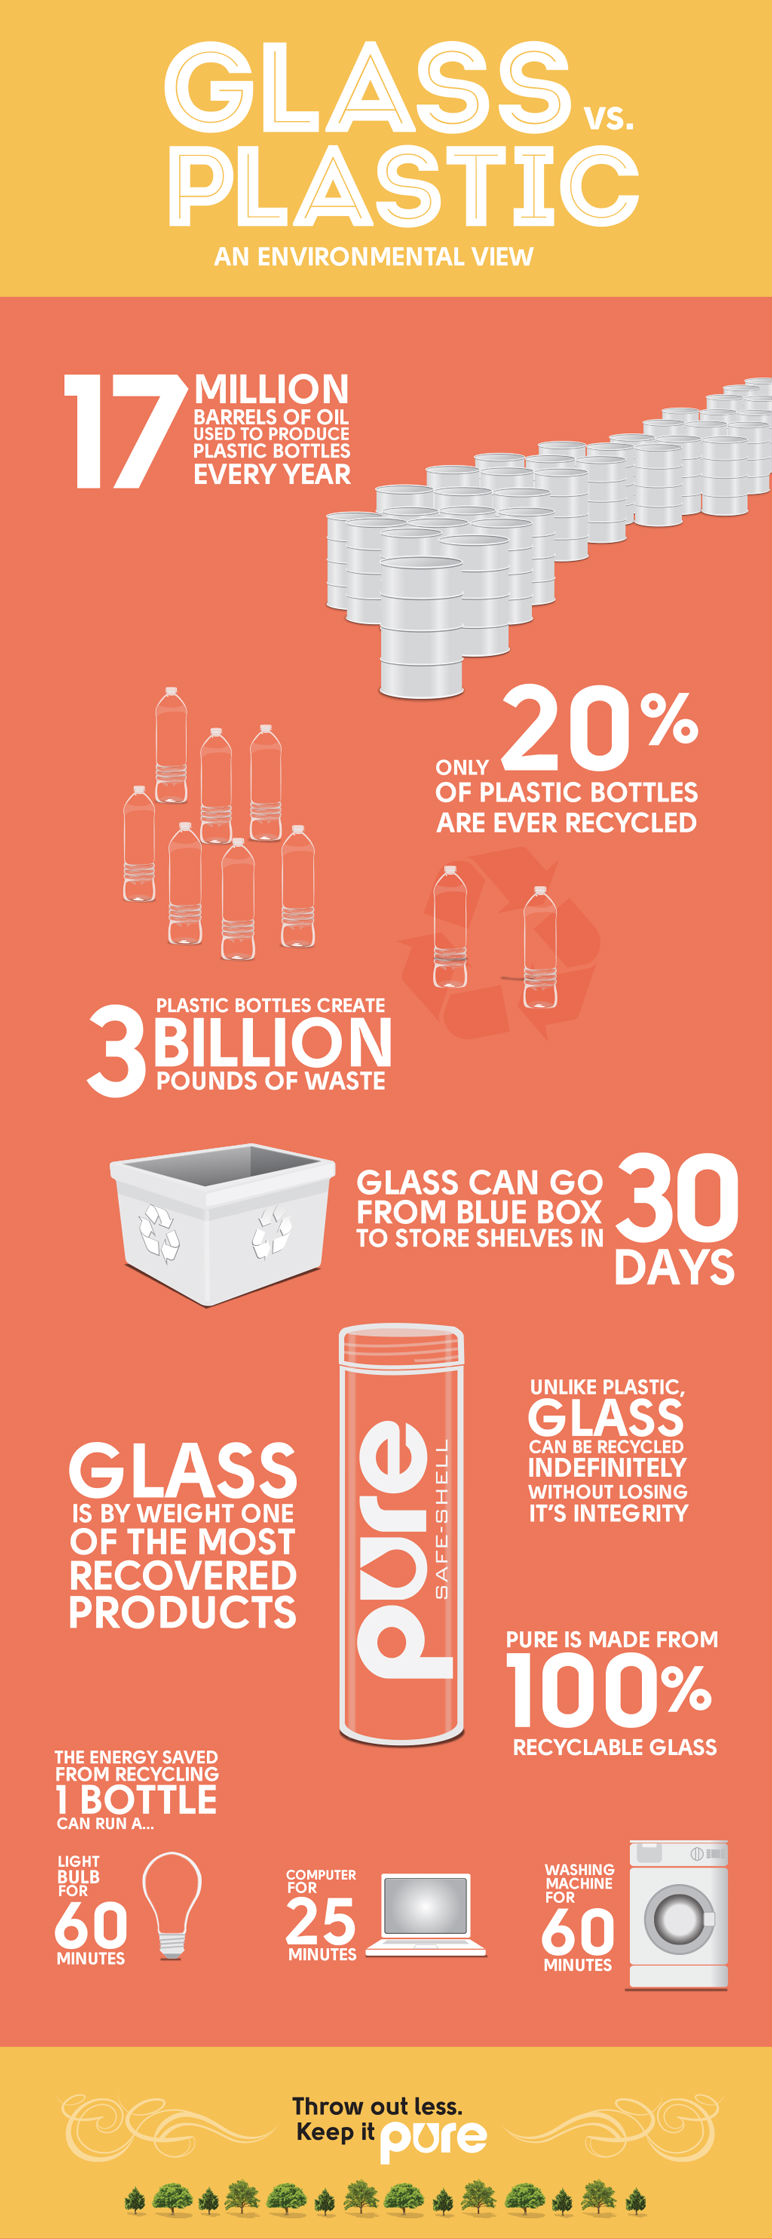 glass-vs-plastic